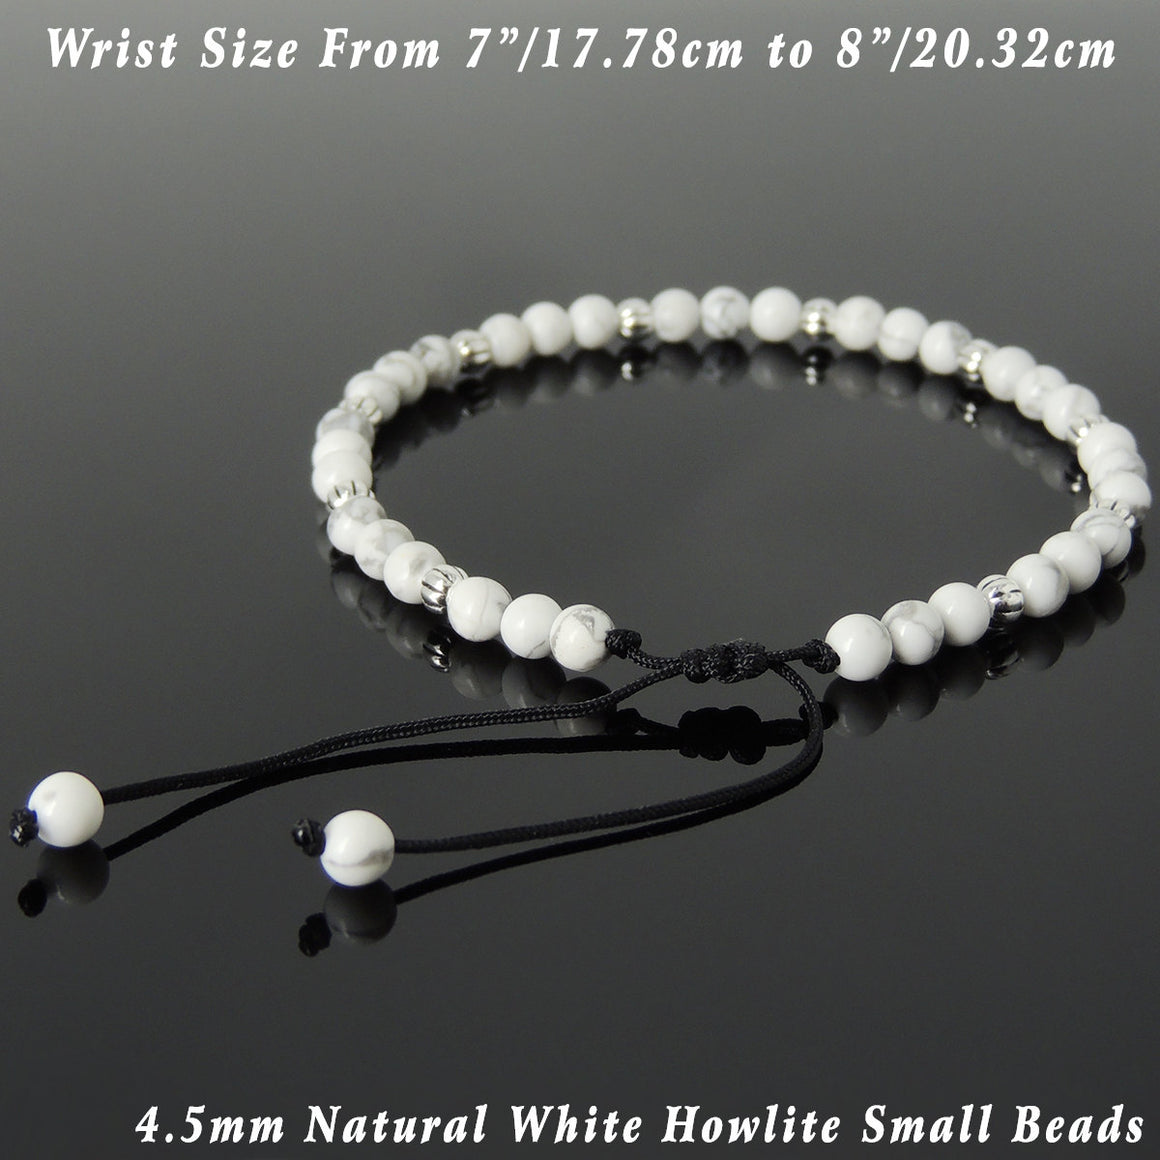 4.5mm White Howlite Adjustable Braided Healing Bracelet with S925 Sterling Silver Artisan Beads - Handmade by Gem & Silver BR1057